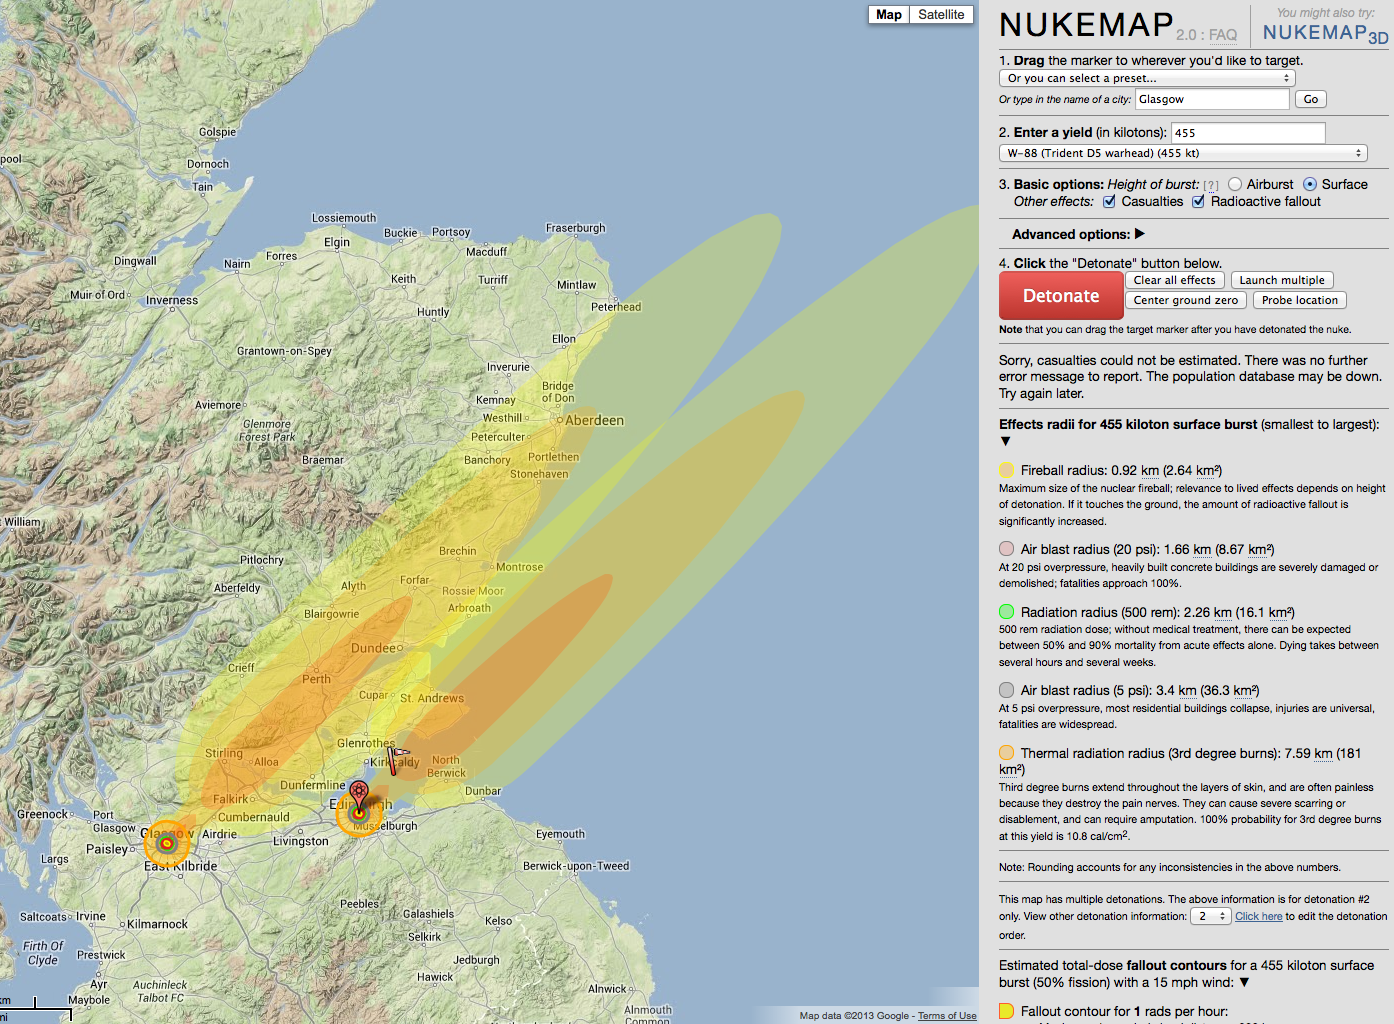 ... : 28 Gigaton Equivalent | NUKEMAP by… | Flickr - Photo Sharing